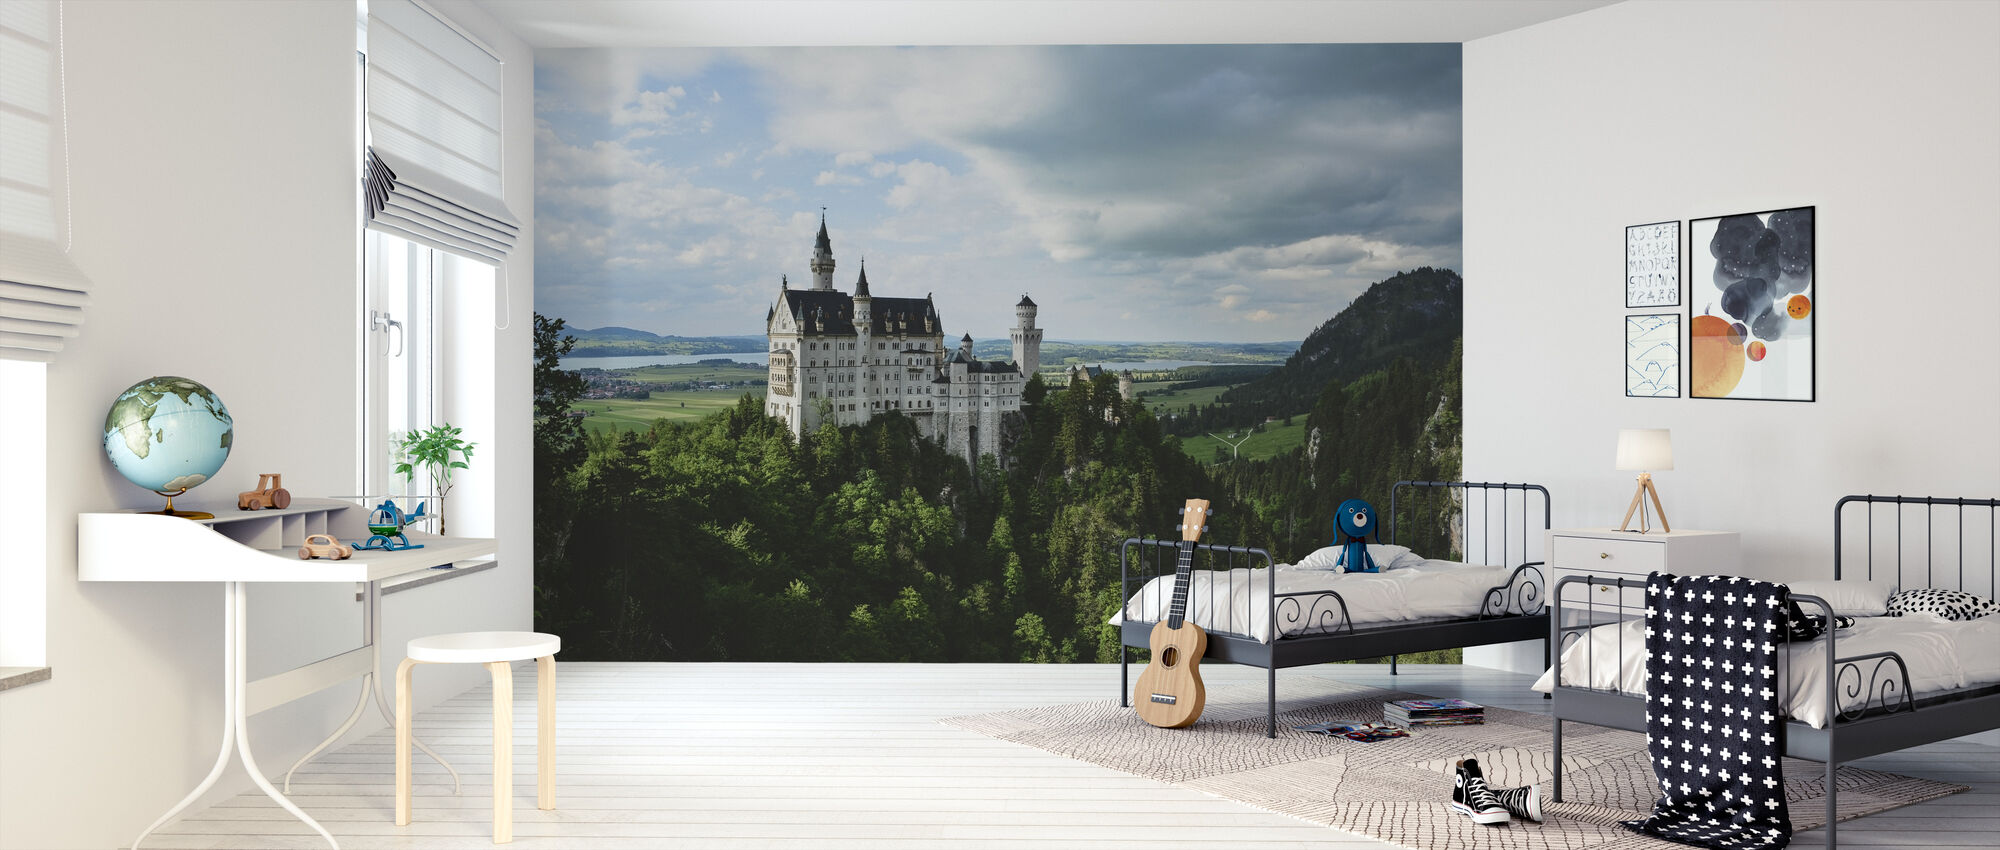 Neuschwanstein Castle - Wallpaper - Kids Room